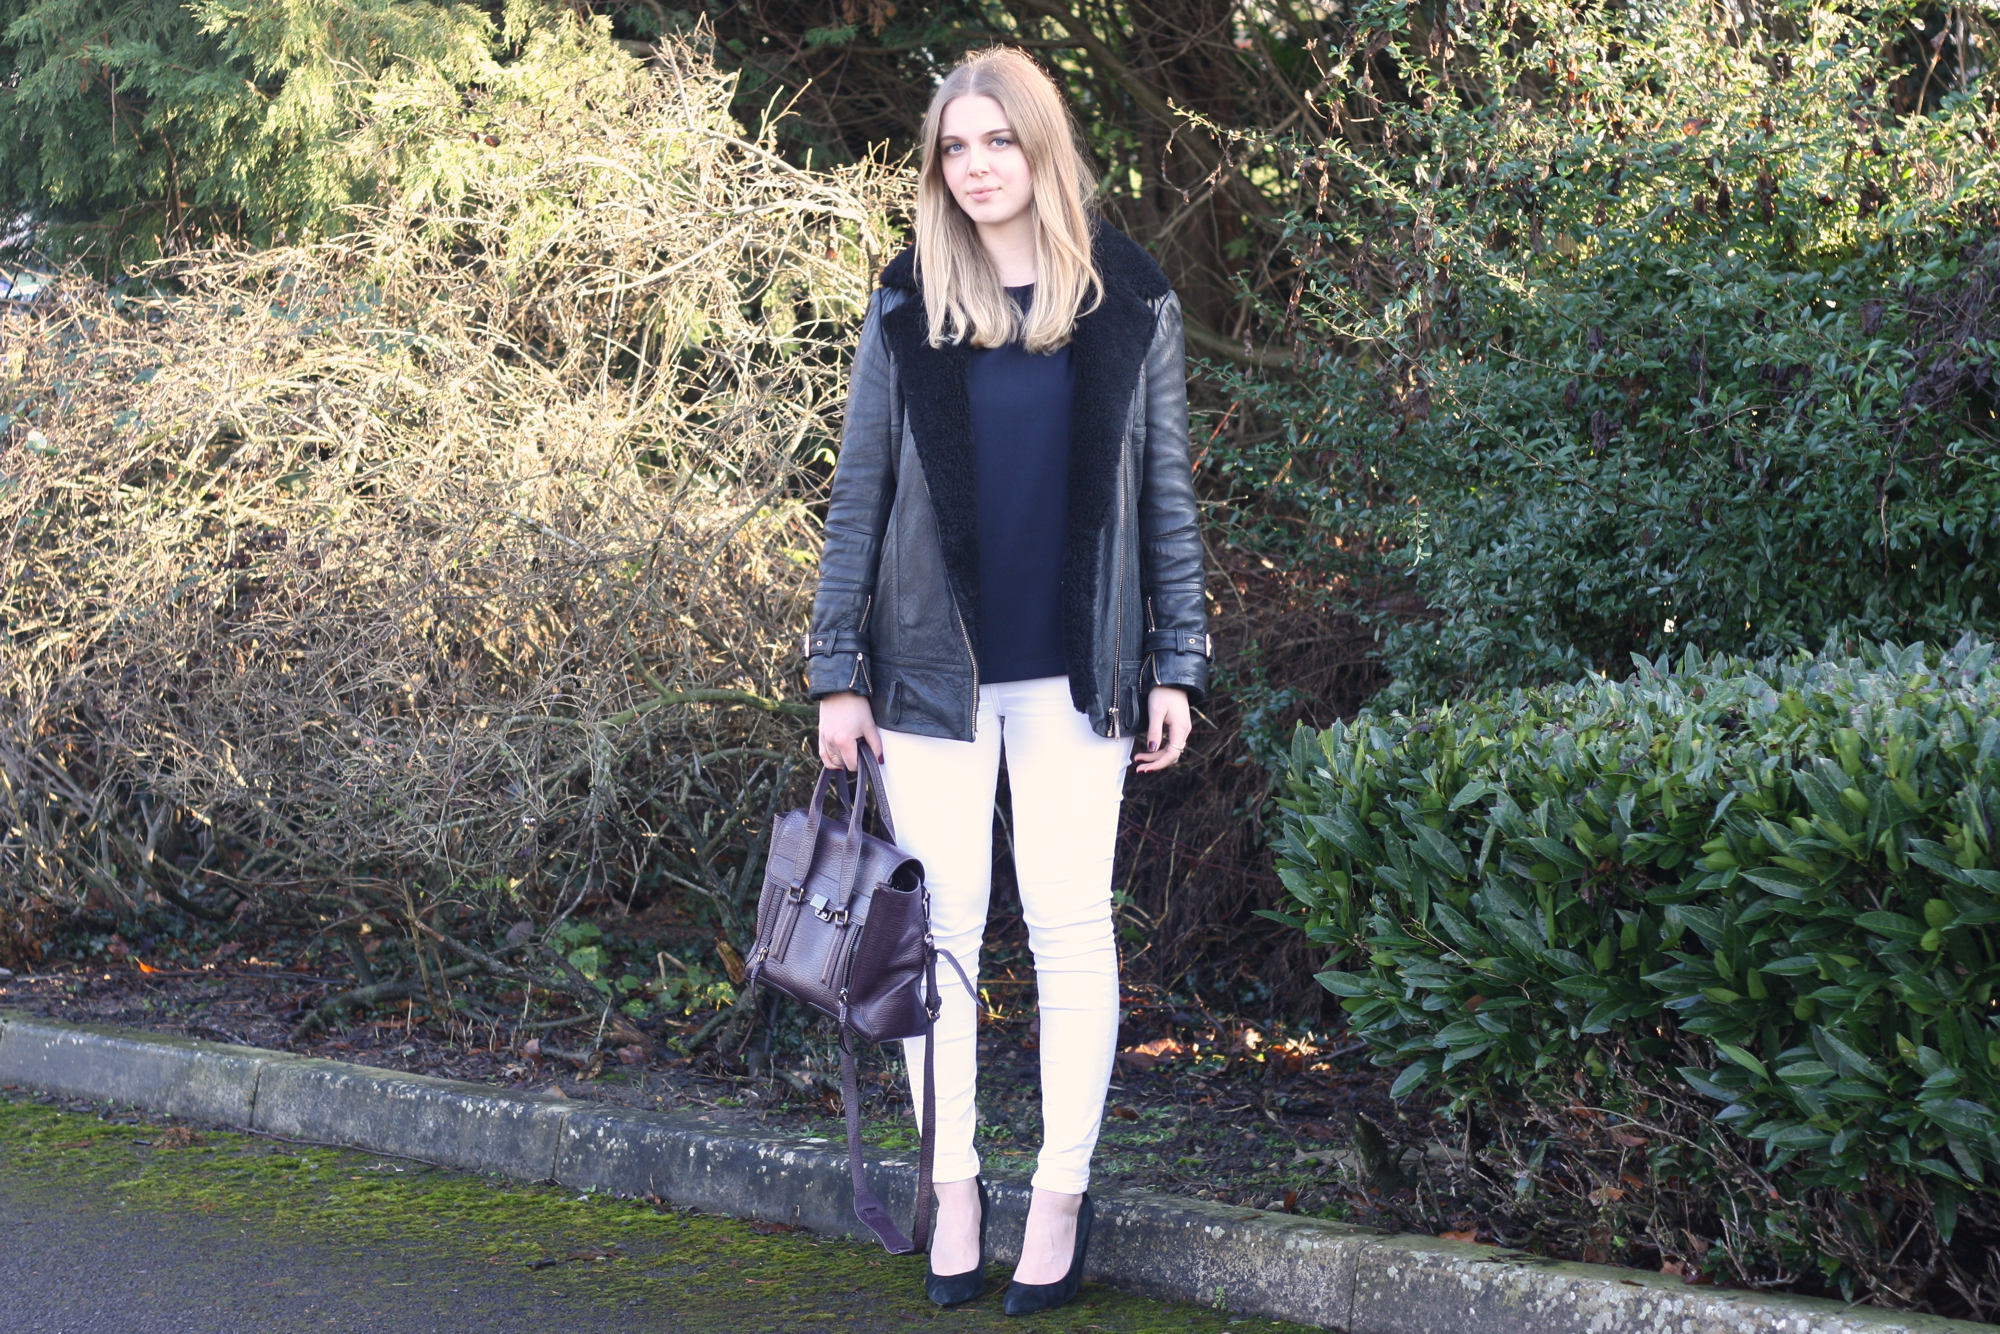 Zara navy swing top, Topshop white skinny jeans and Whistles black suede heels